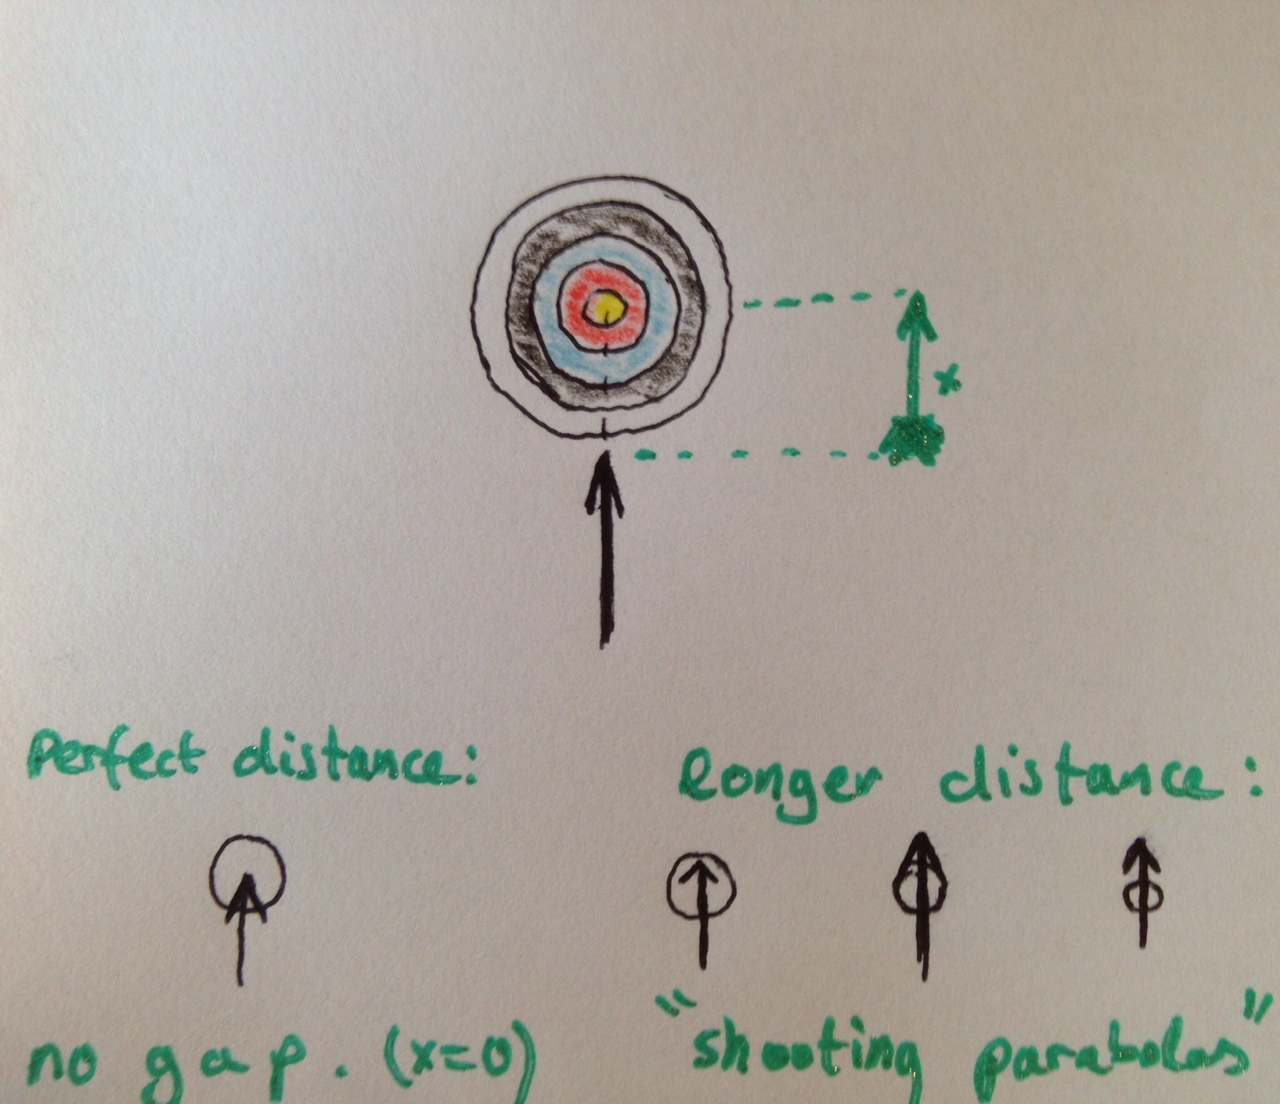 hight resolution of gap shooting aiming technique from the archer s point of view